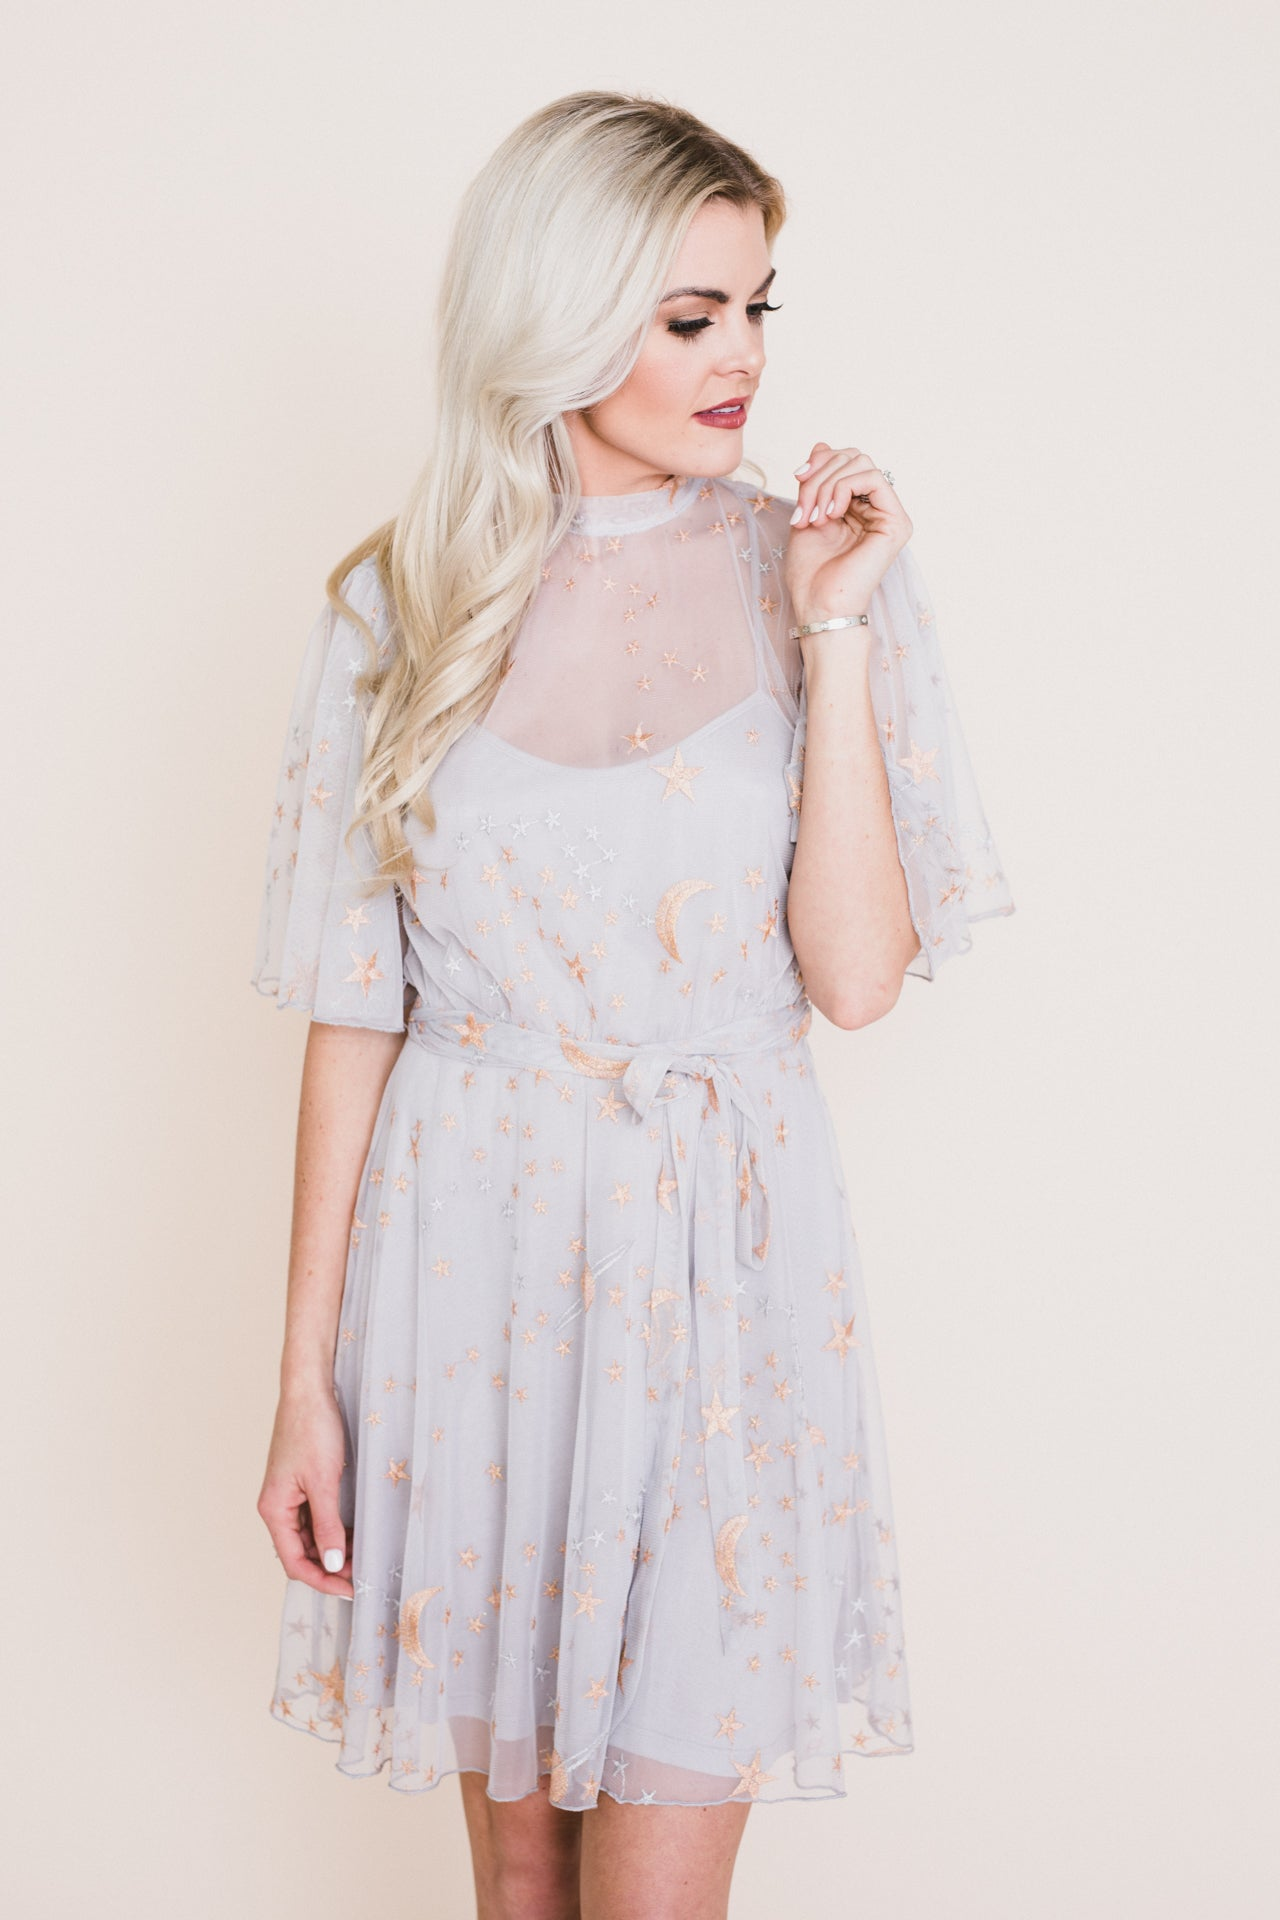 Cosmic Love Embroidered Dress *FINAL SALE*